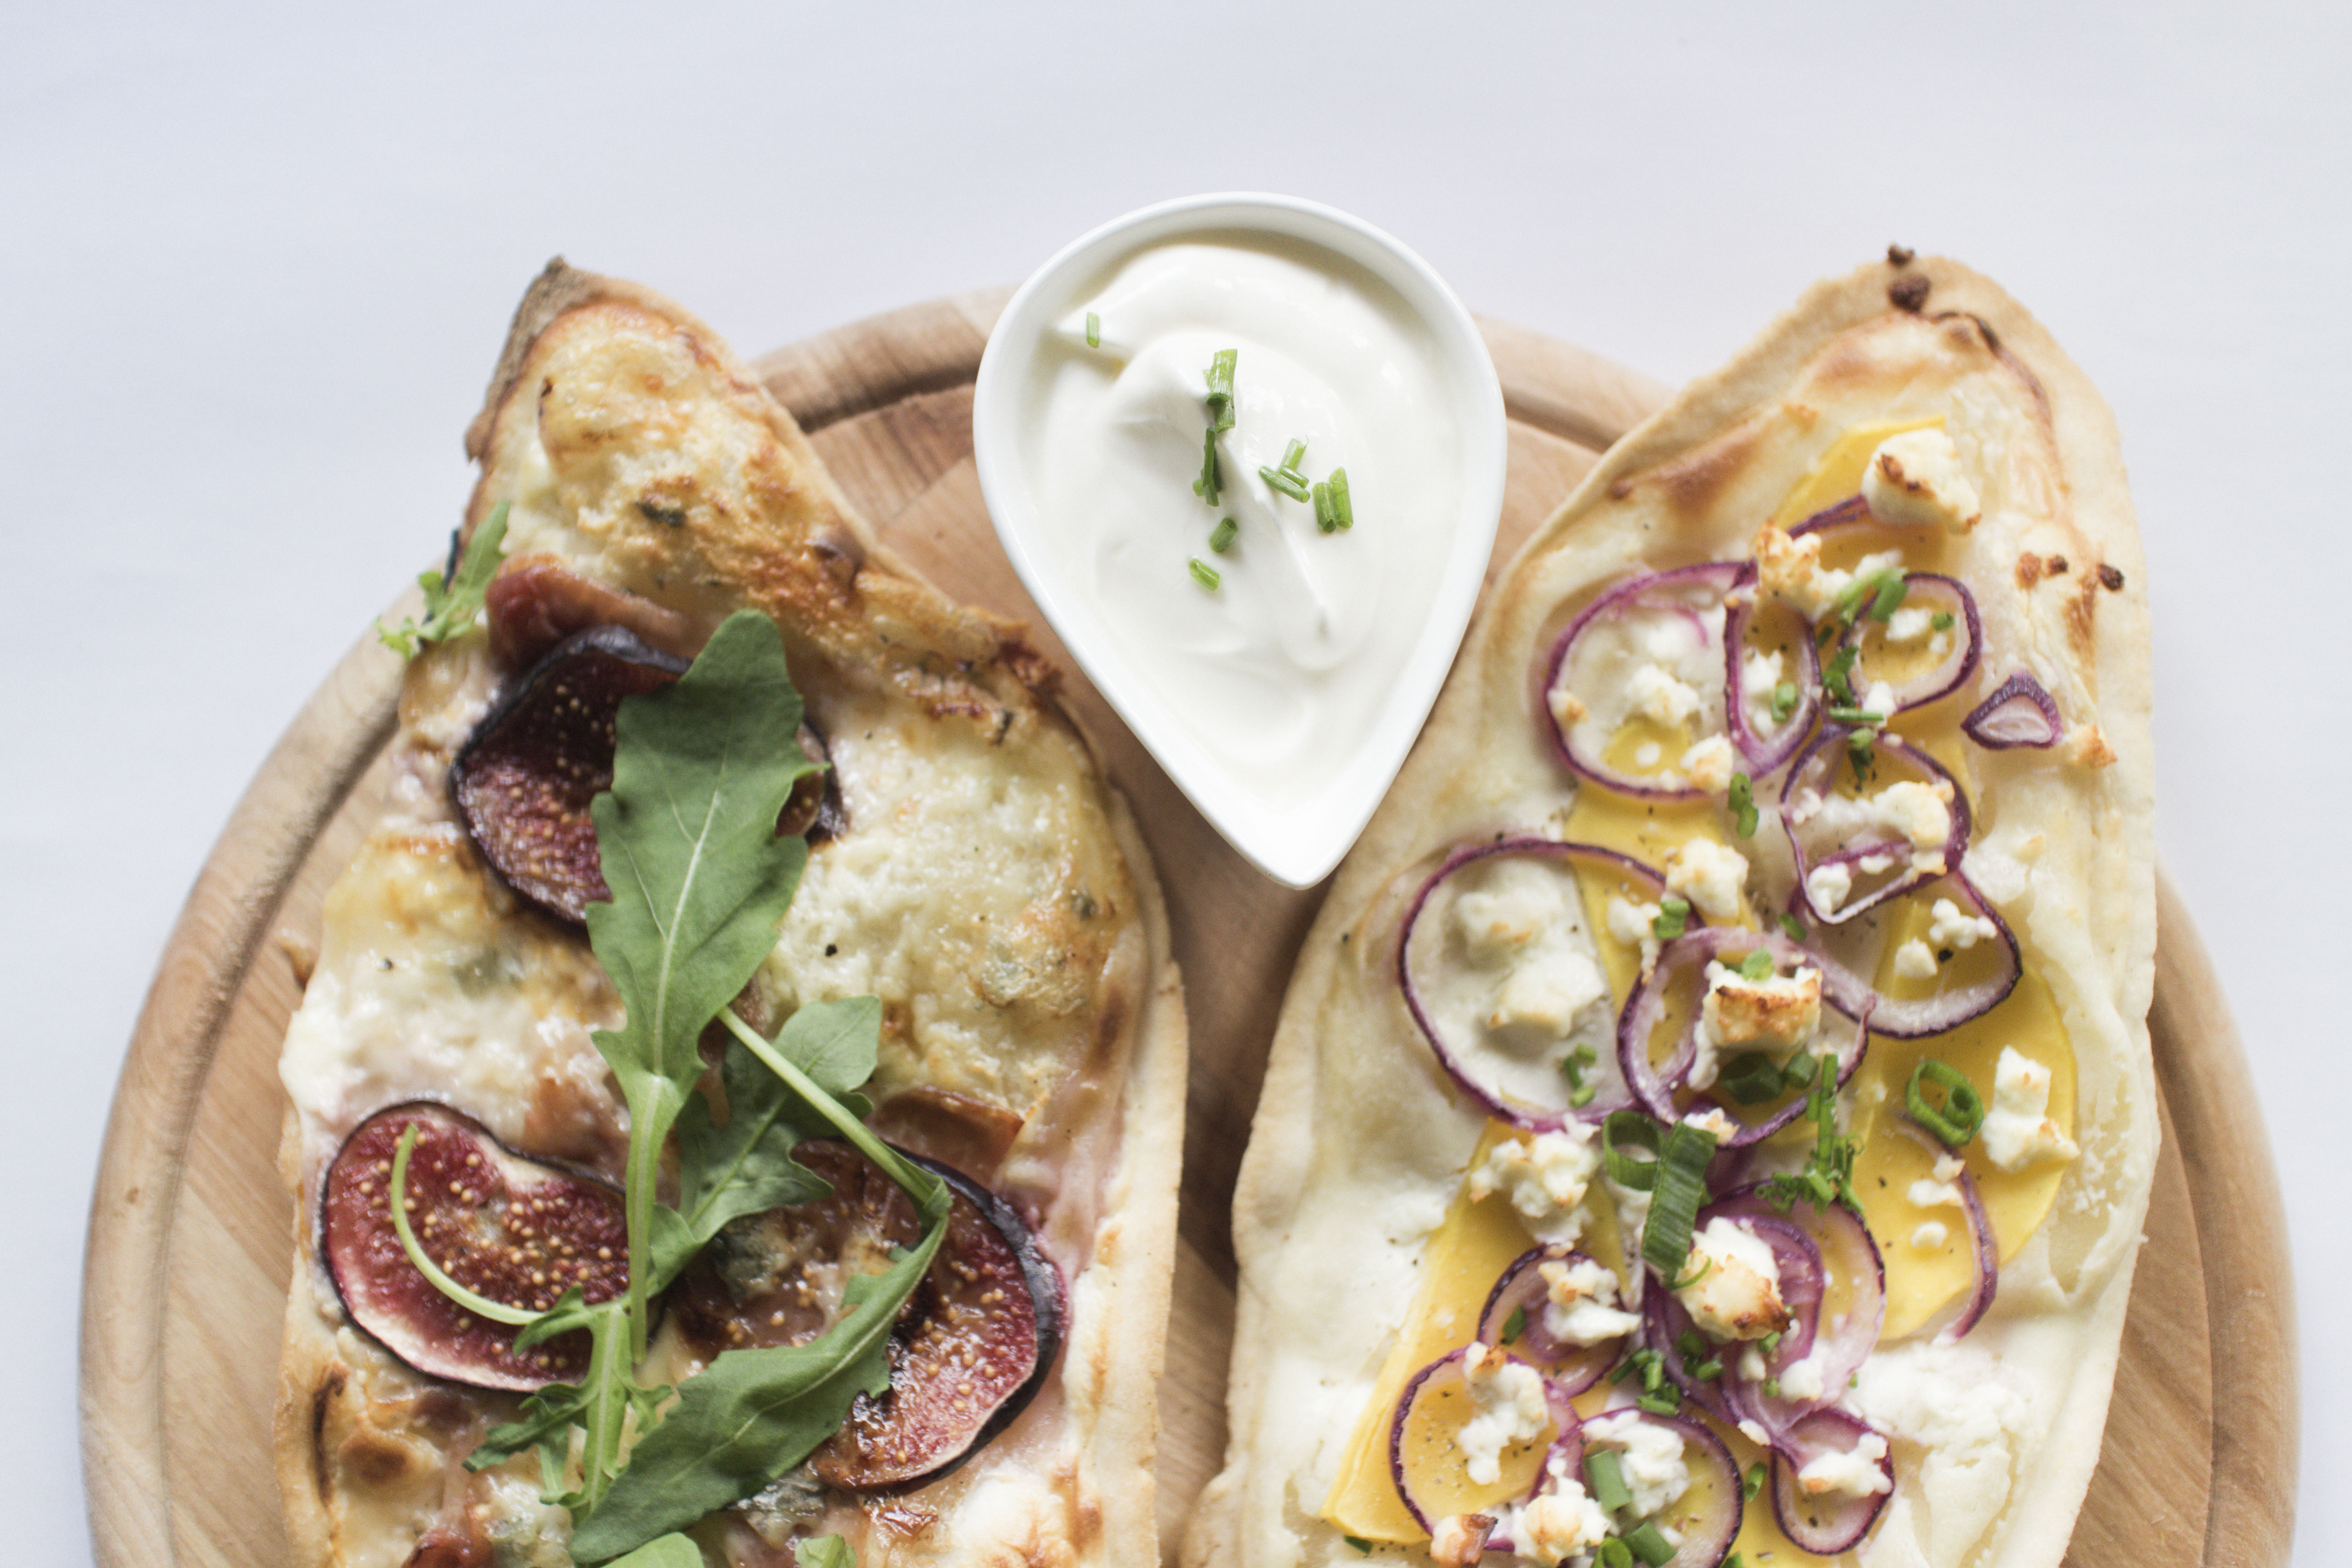 IHEARTALICE – Fashion, Travel, Lifestyle & Food Blog from Berlin/Germany by Alice M. Huynh: Flammkuchen with Butternutsquash, Figs, Prosciutto & Gorgonzola by Yvi Huynh / Food Friday